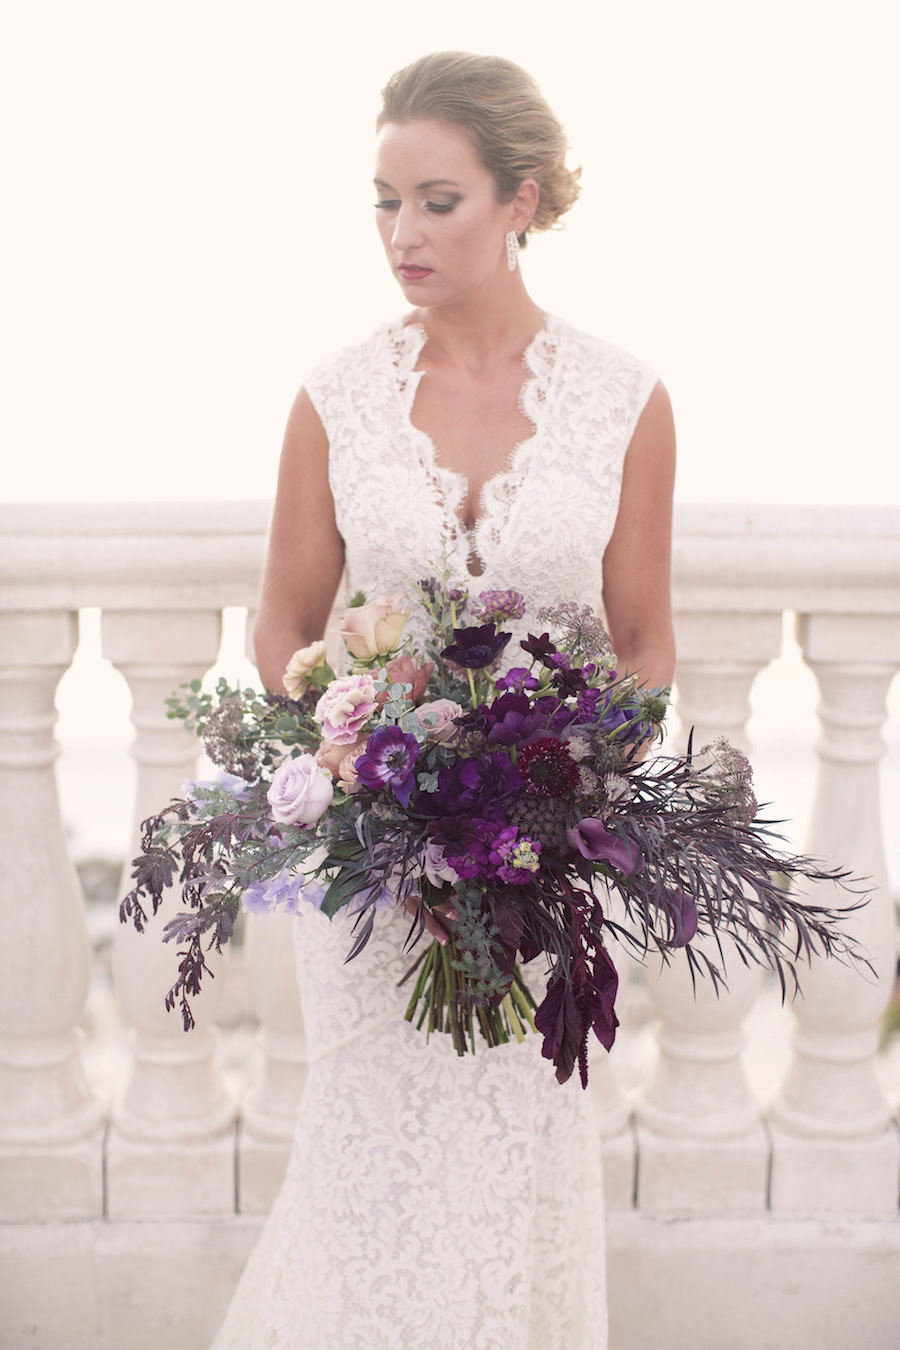 Lace Wedding Dress from The Bride Tampa | Large Purple and Blush Pink Wedding Bouquet | Clearwater Wedding Photographer Djamel Photography